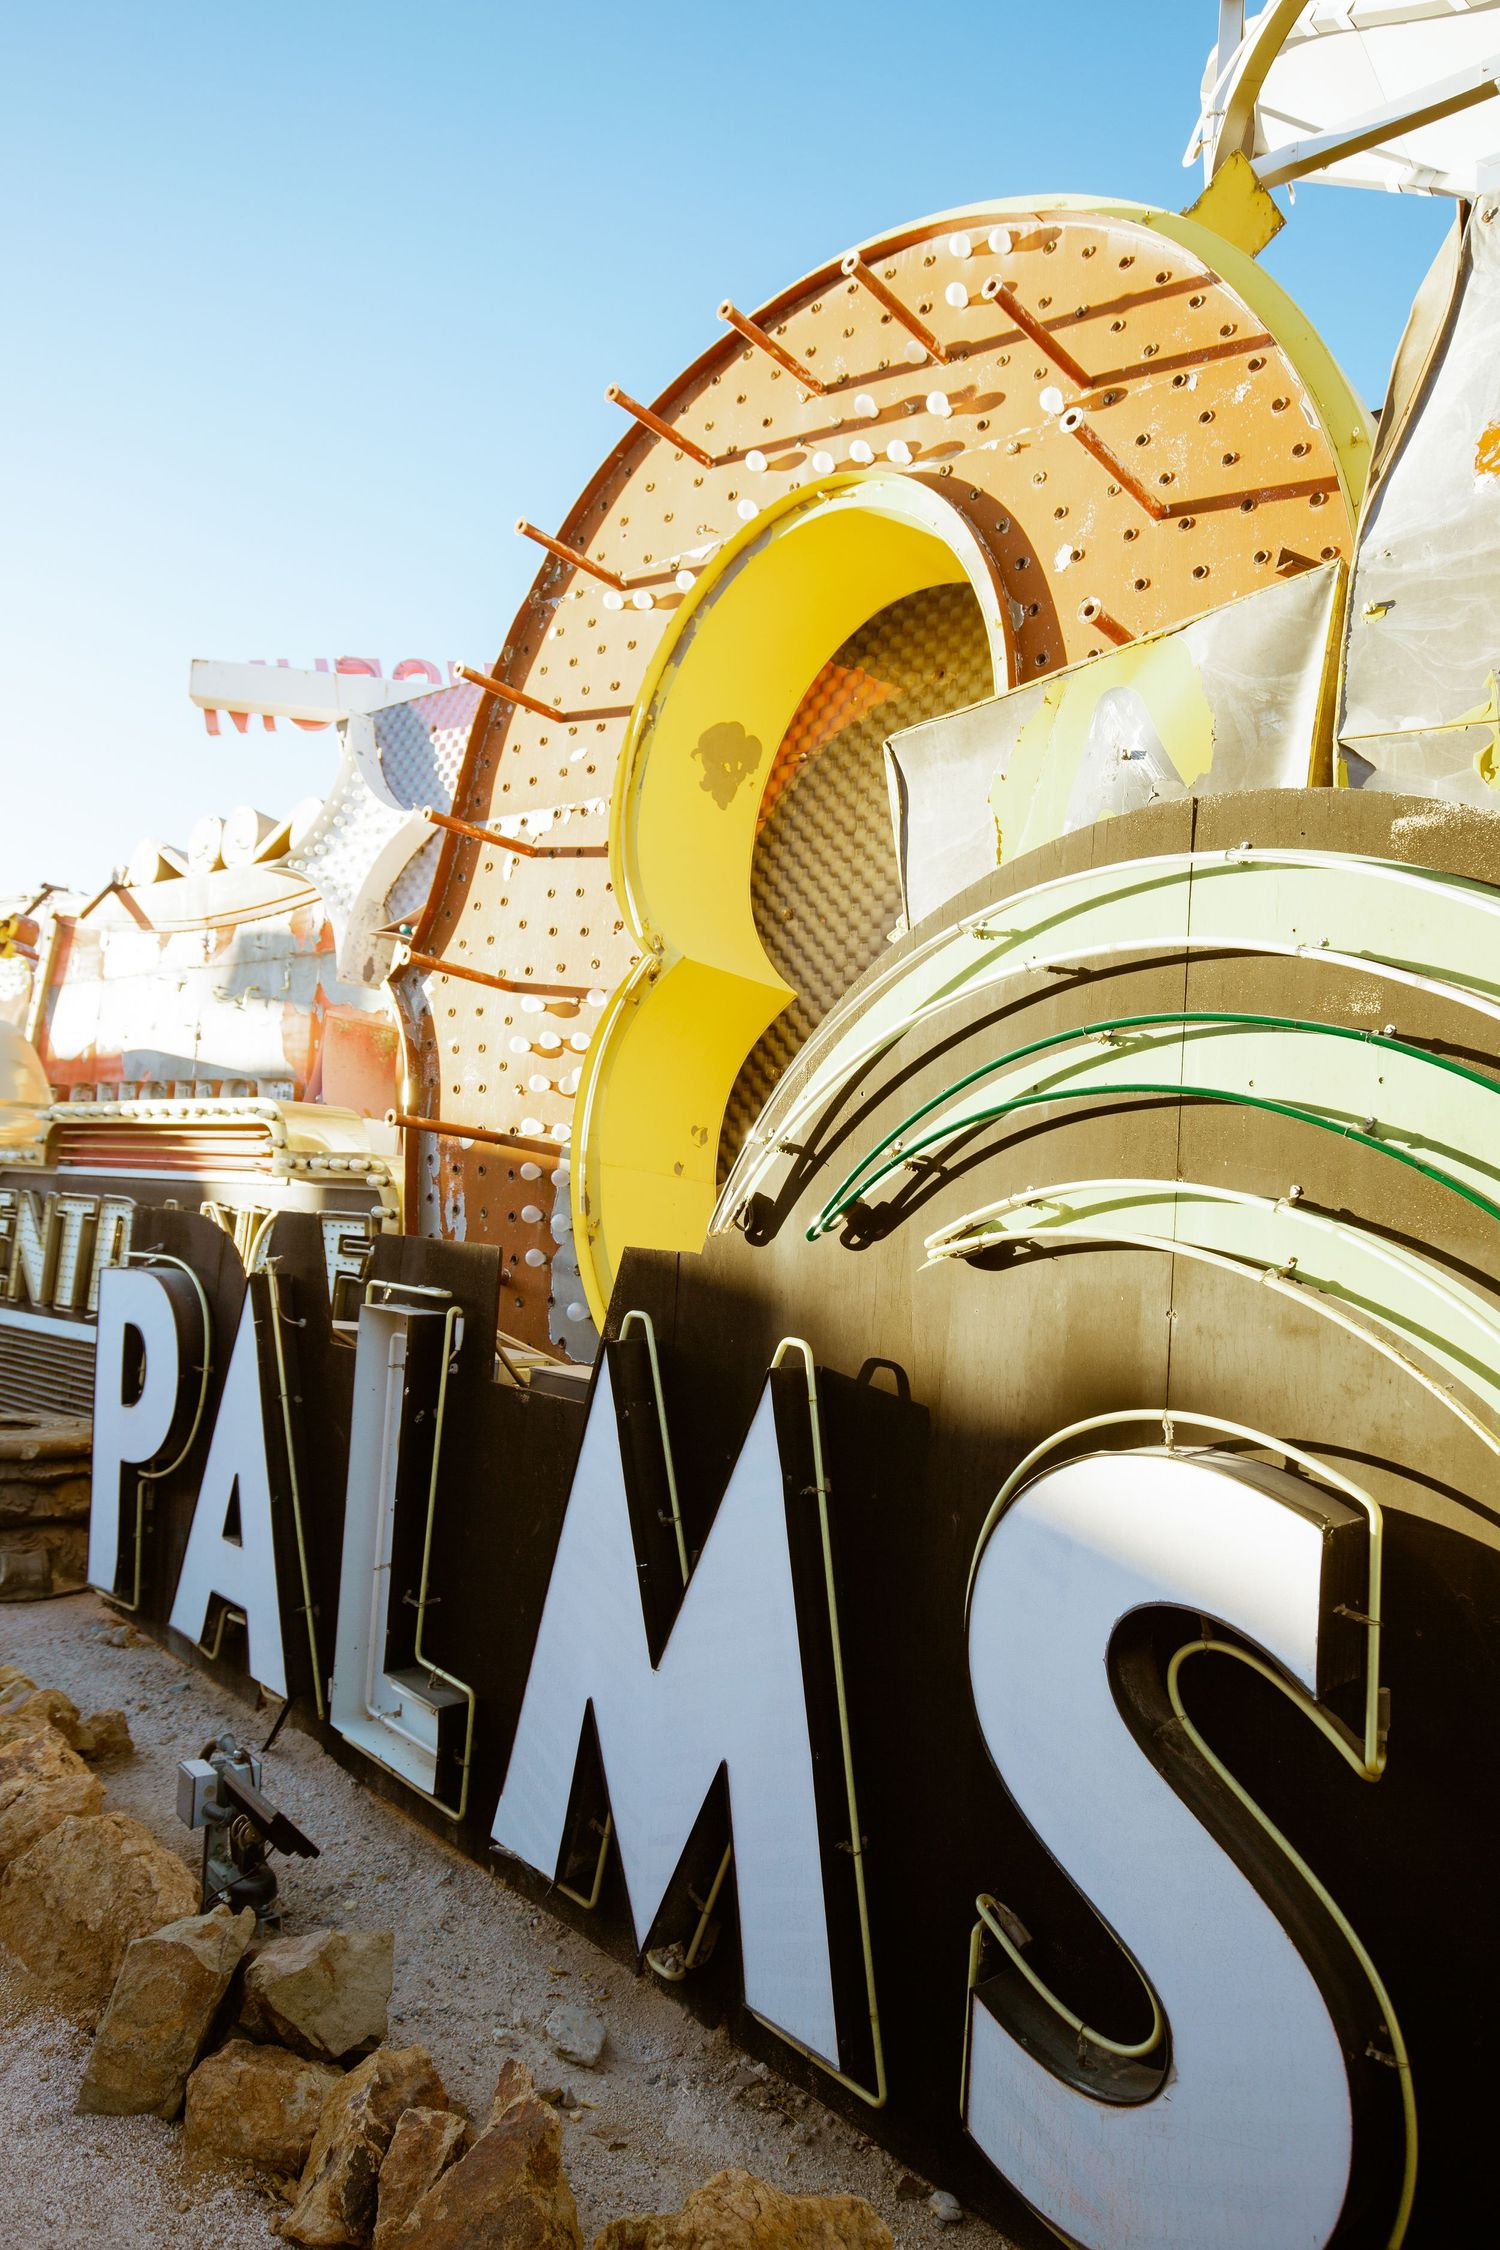 Neon Museum - Detailed shots - retired palms neon sign